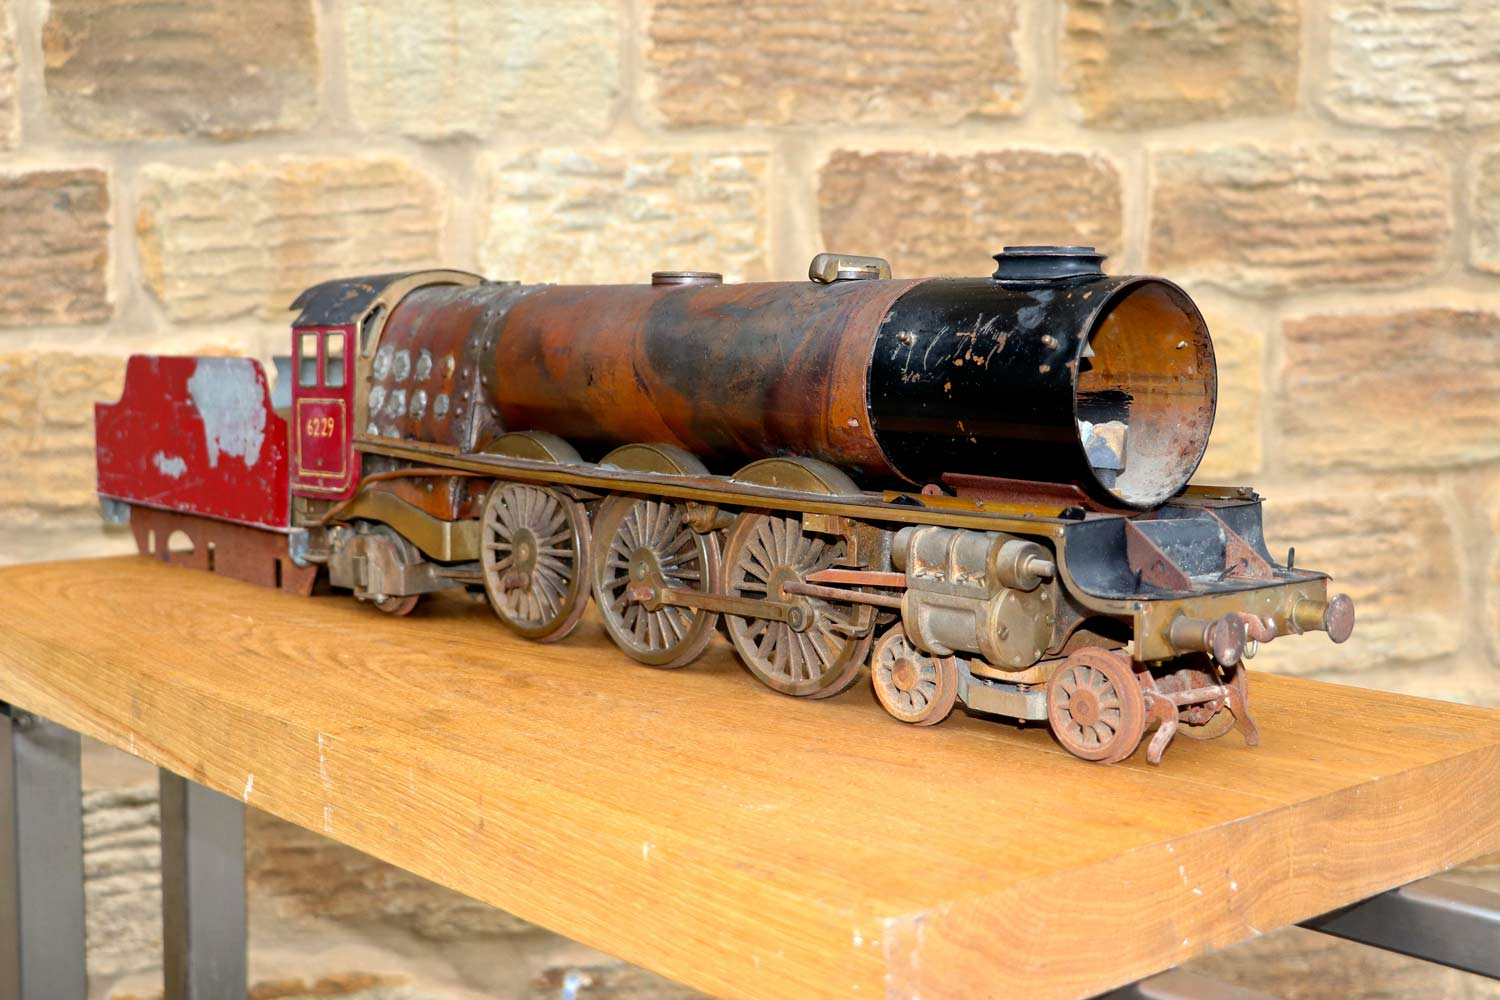 test 2-and-a-half-inch-gauge-LMS-Duchess-live-steam-locomotive-for-sale-05